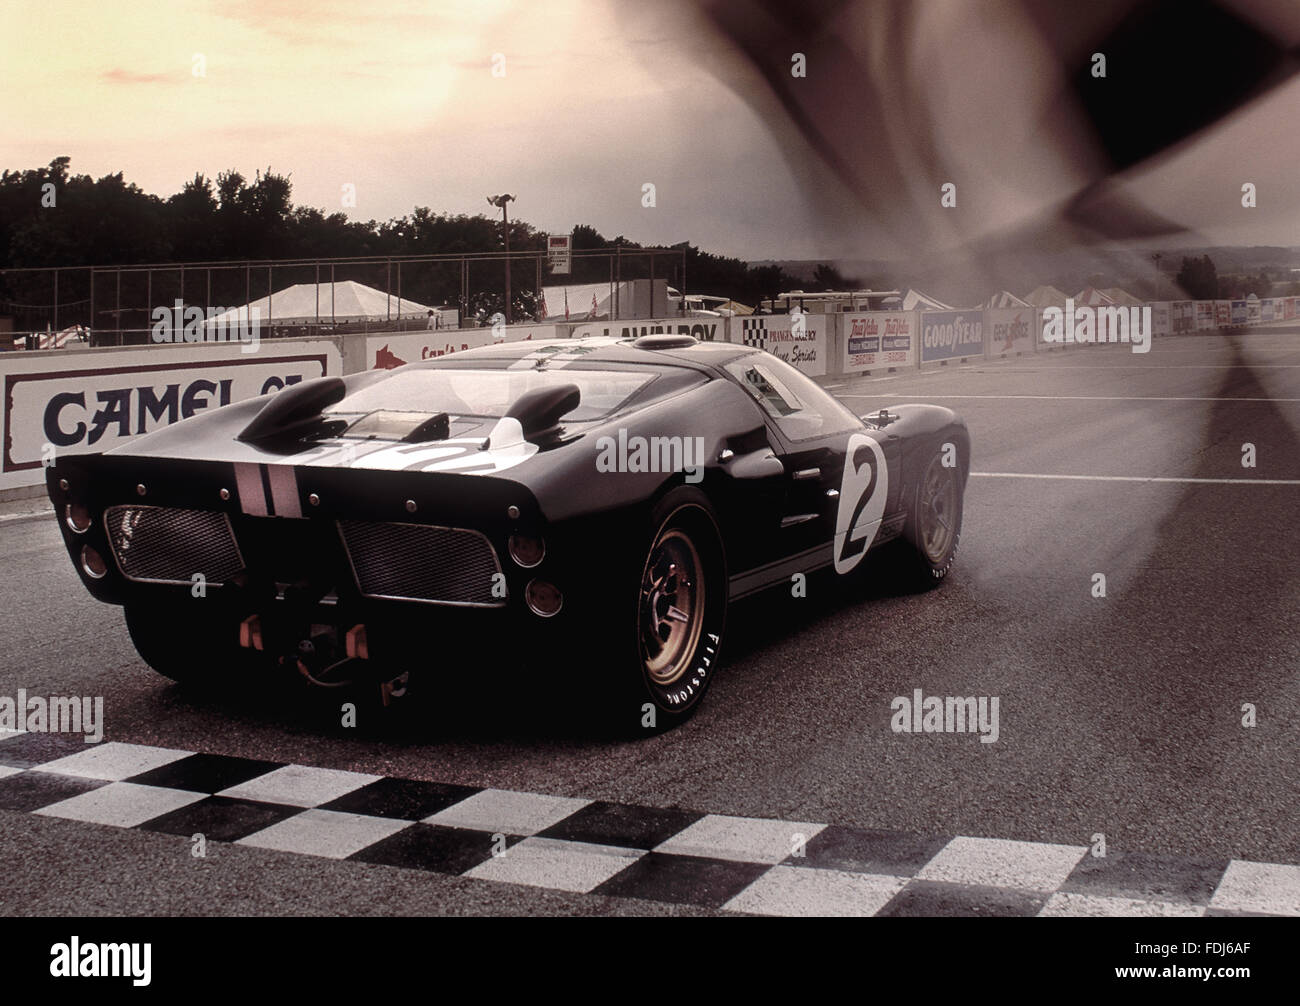 ford gt40 mkii 1966 le mans 24 hour race winner driven by bruce stock photo 94442503 alamy. Black Bedroom Furniture Sets. Home Design Ideas